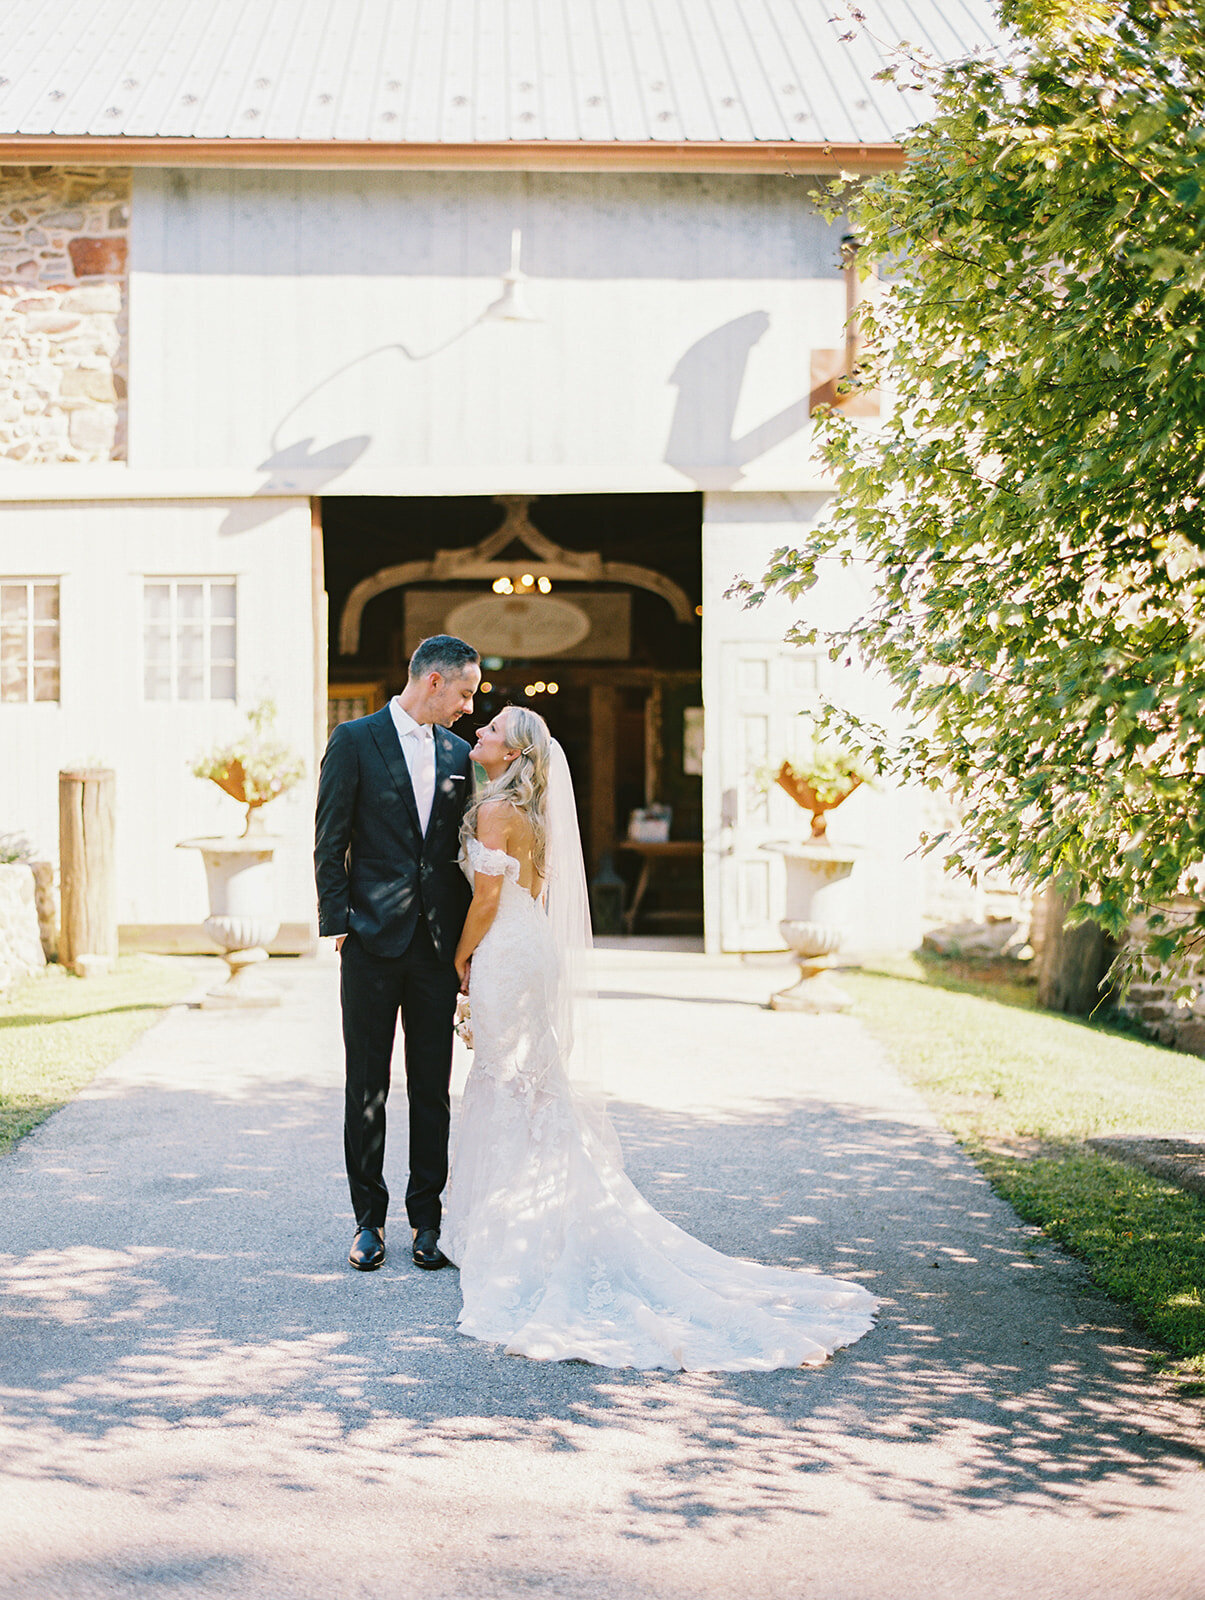 du_soleil_photographie_life'spatina_willowbrook_farm_wedding_christine_david_bride_groom_1st_look-99_websize